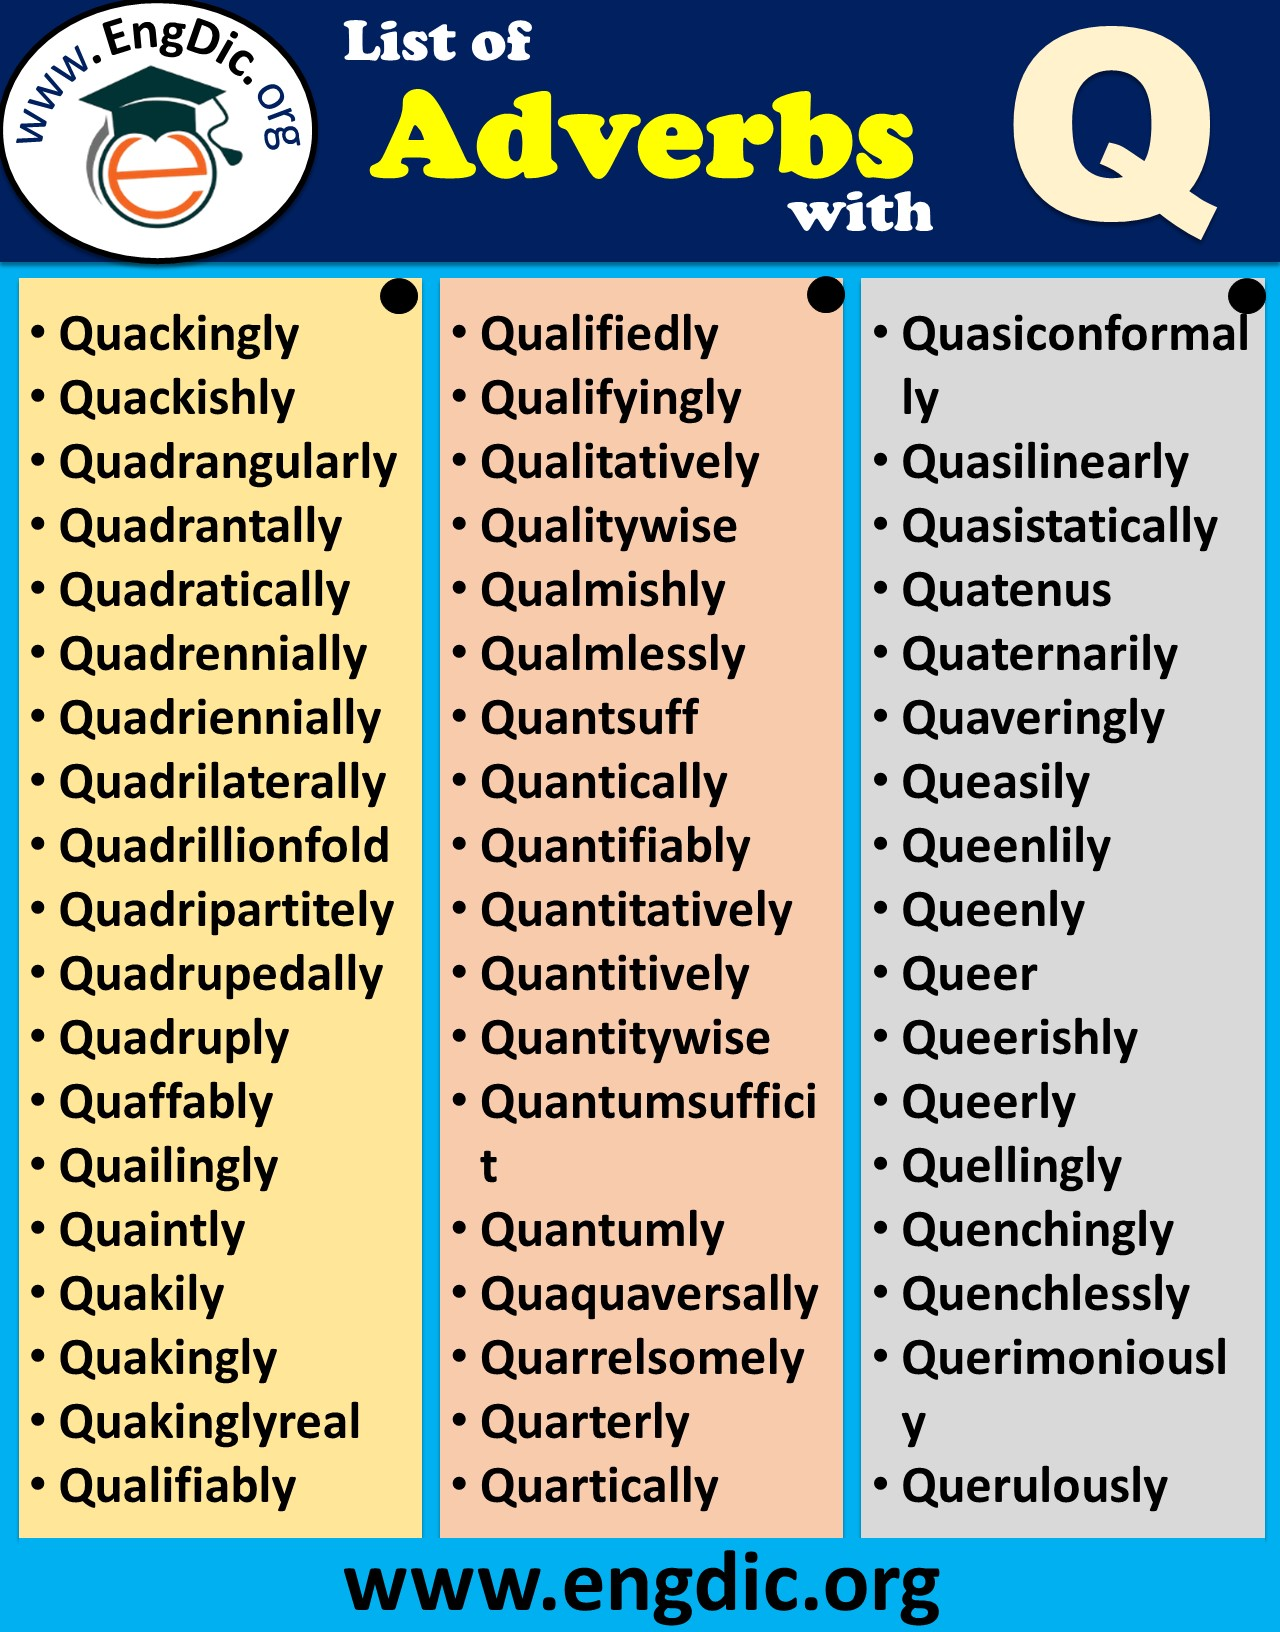 adverbs starting with q